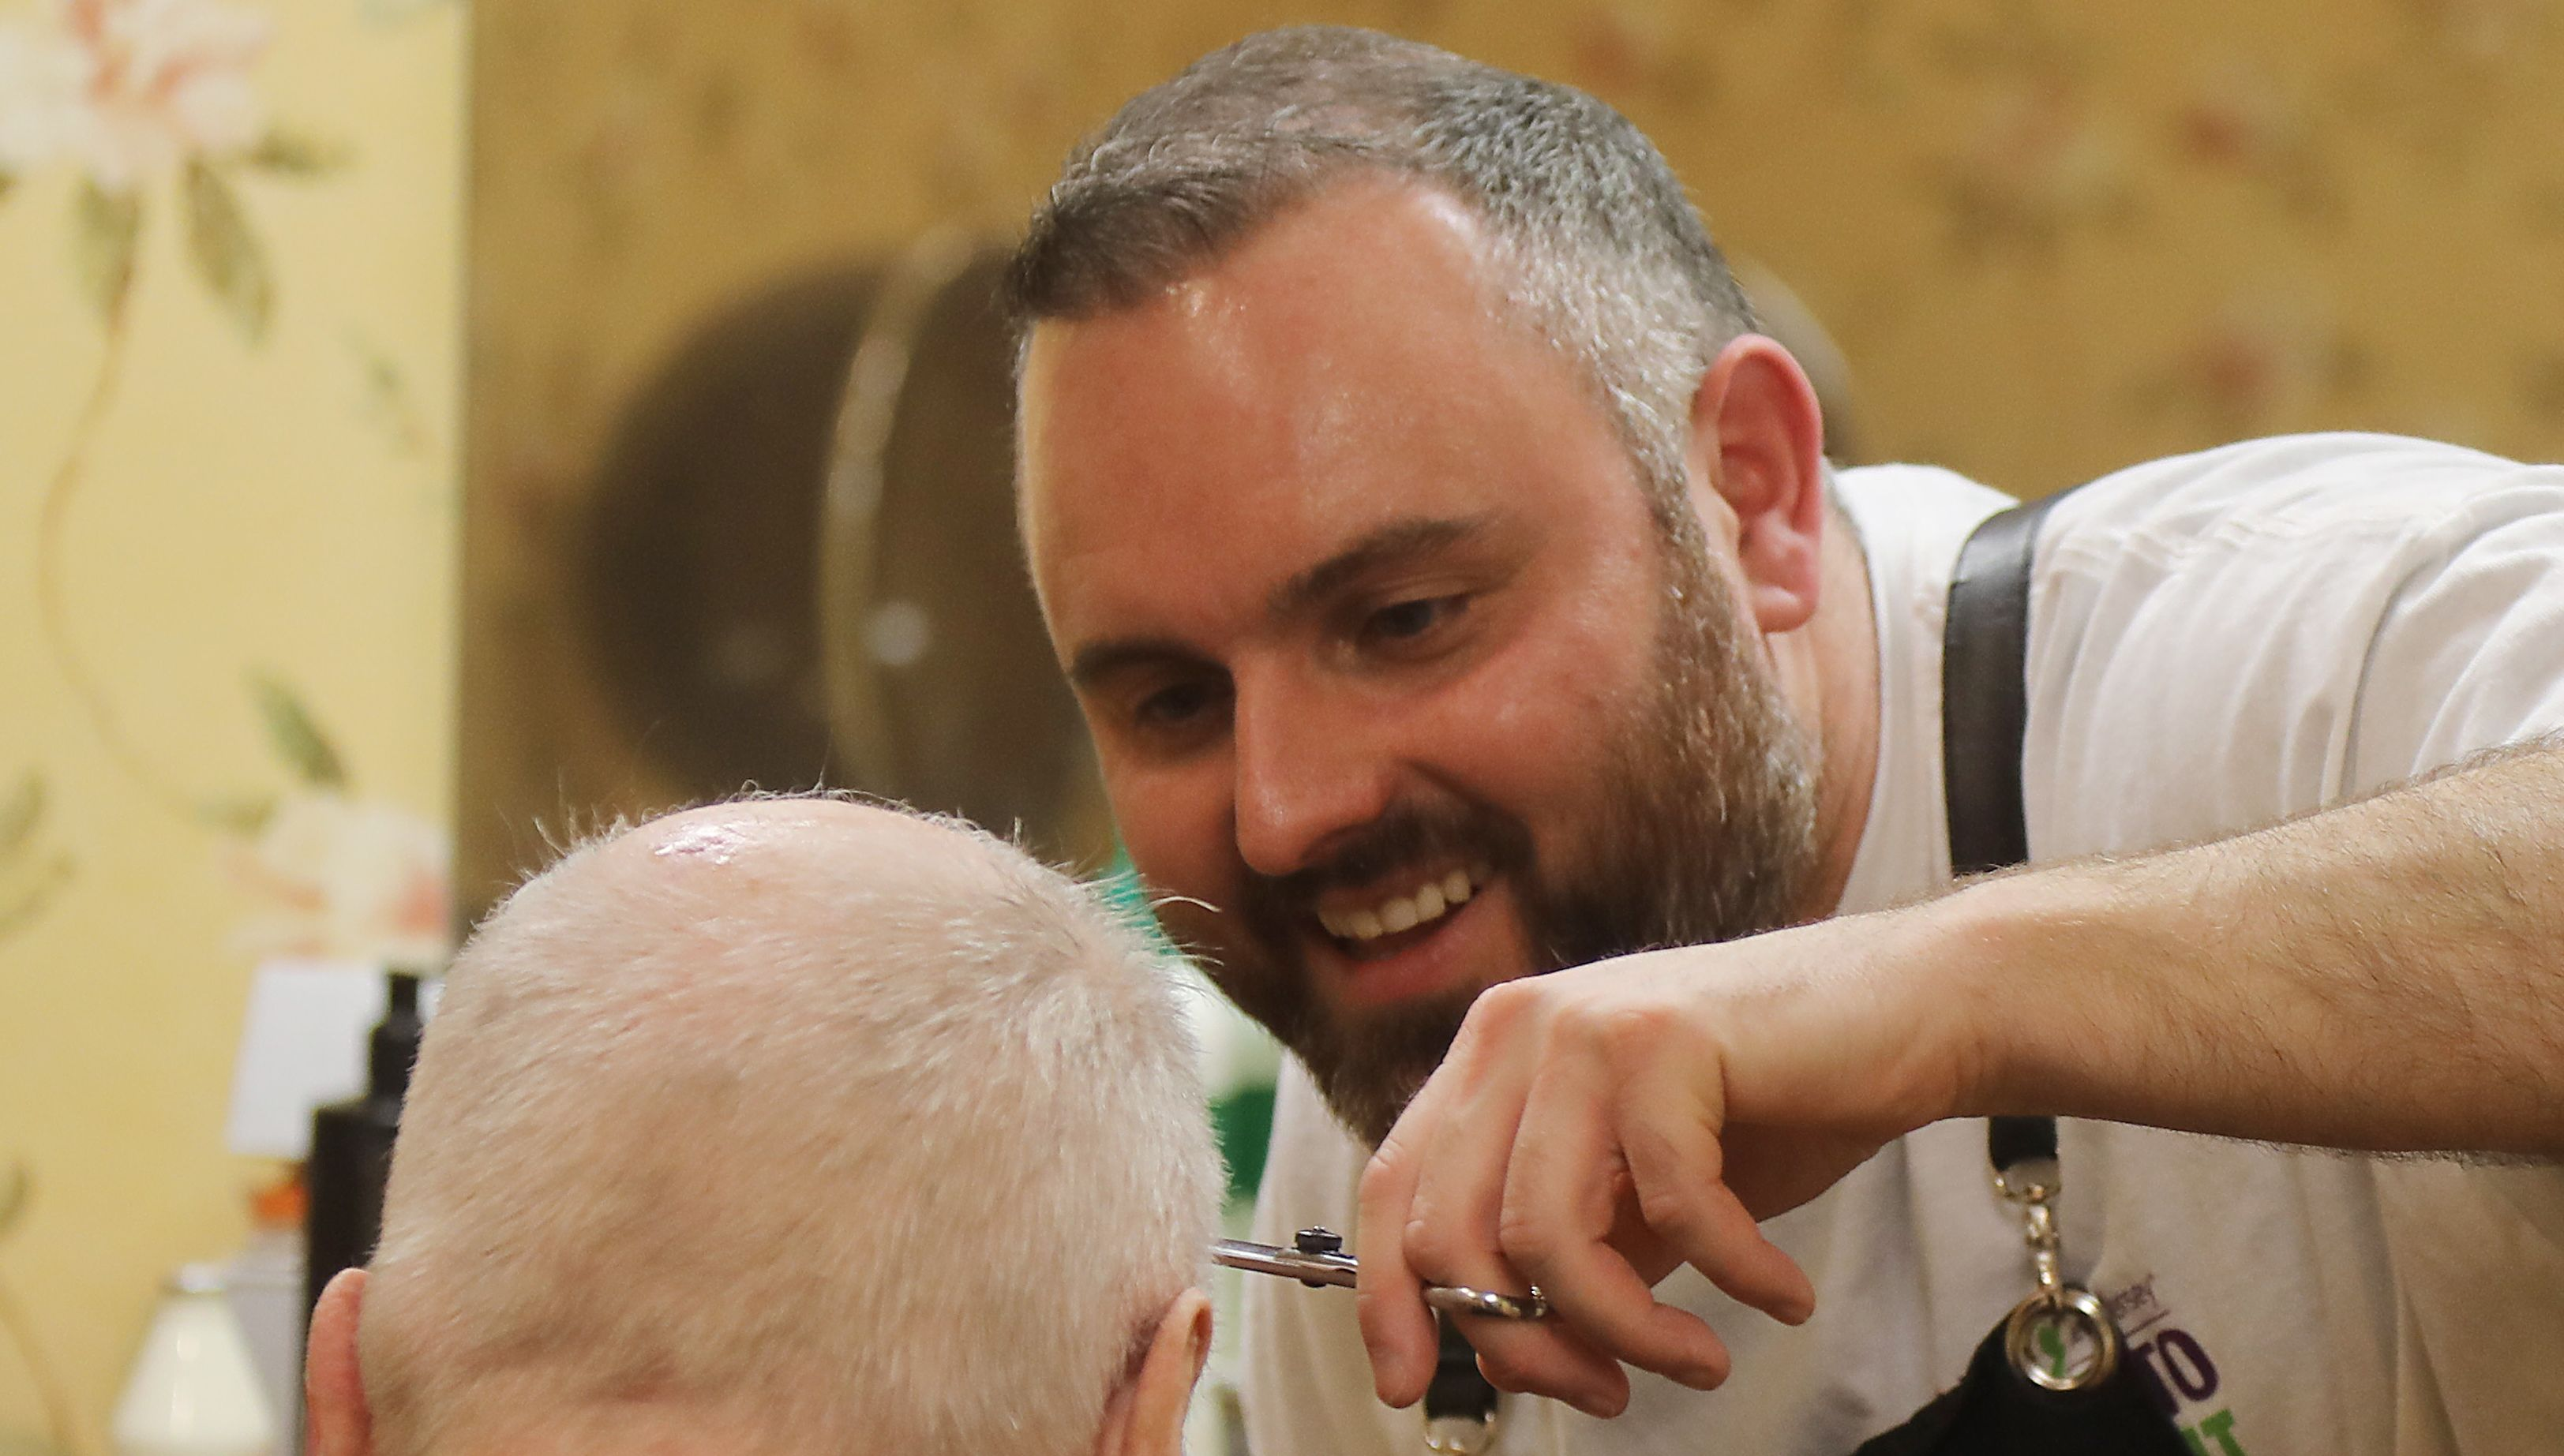 Citrus aftershave, old-fashioned tools: Barber brings men with dementia back in time | DailyRecord